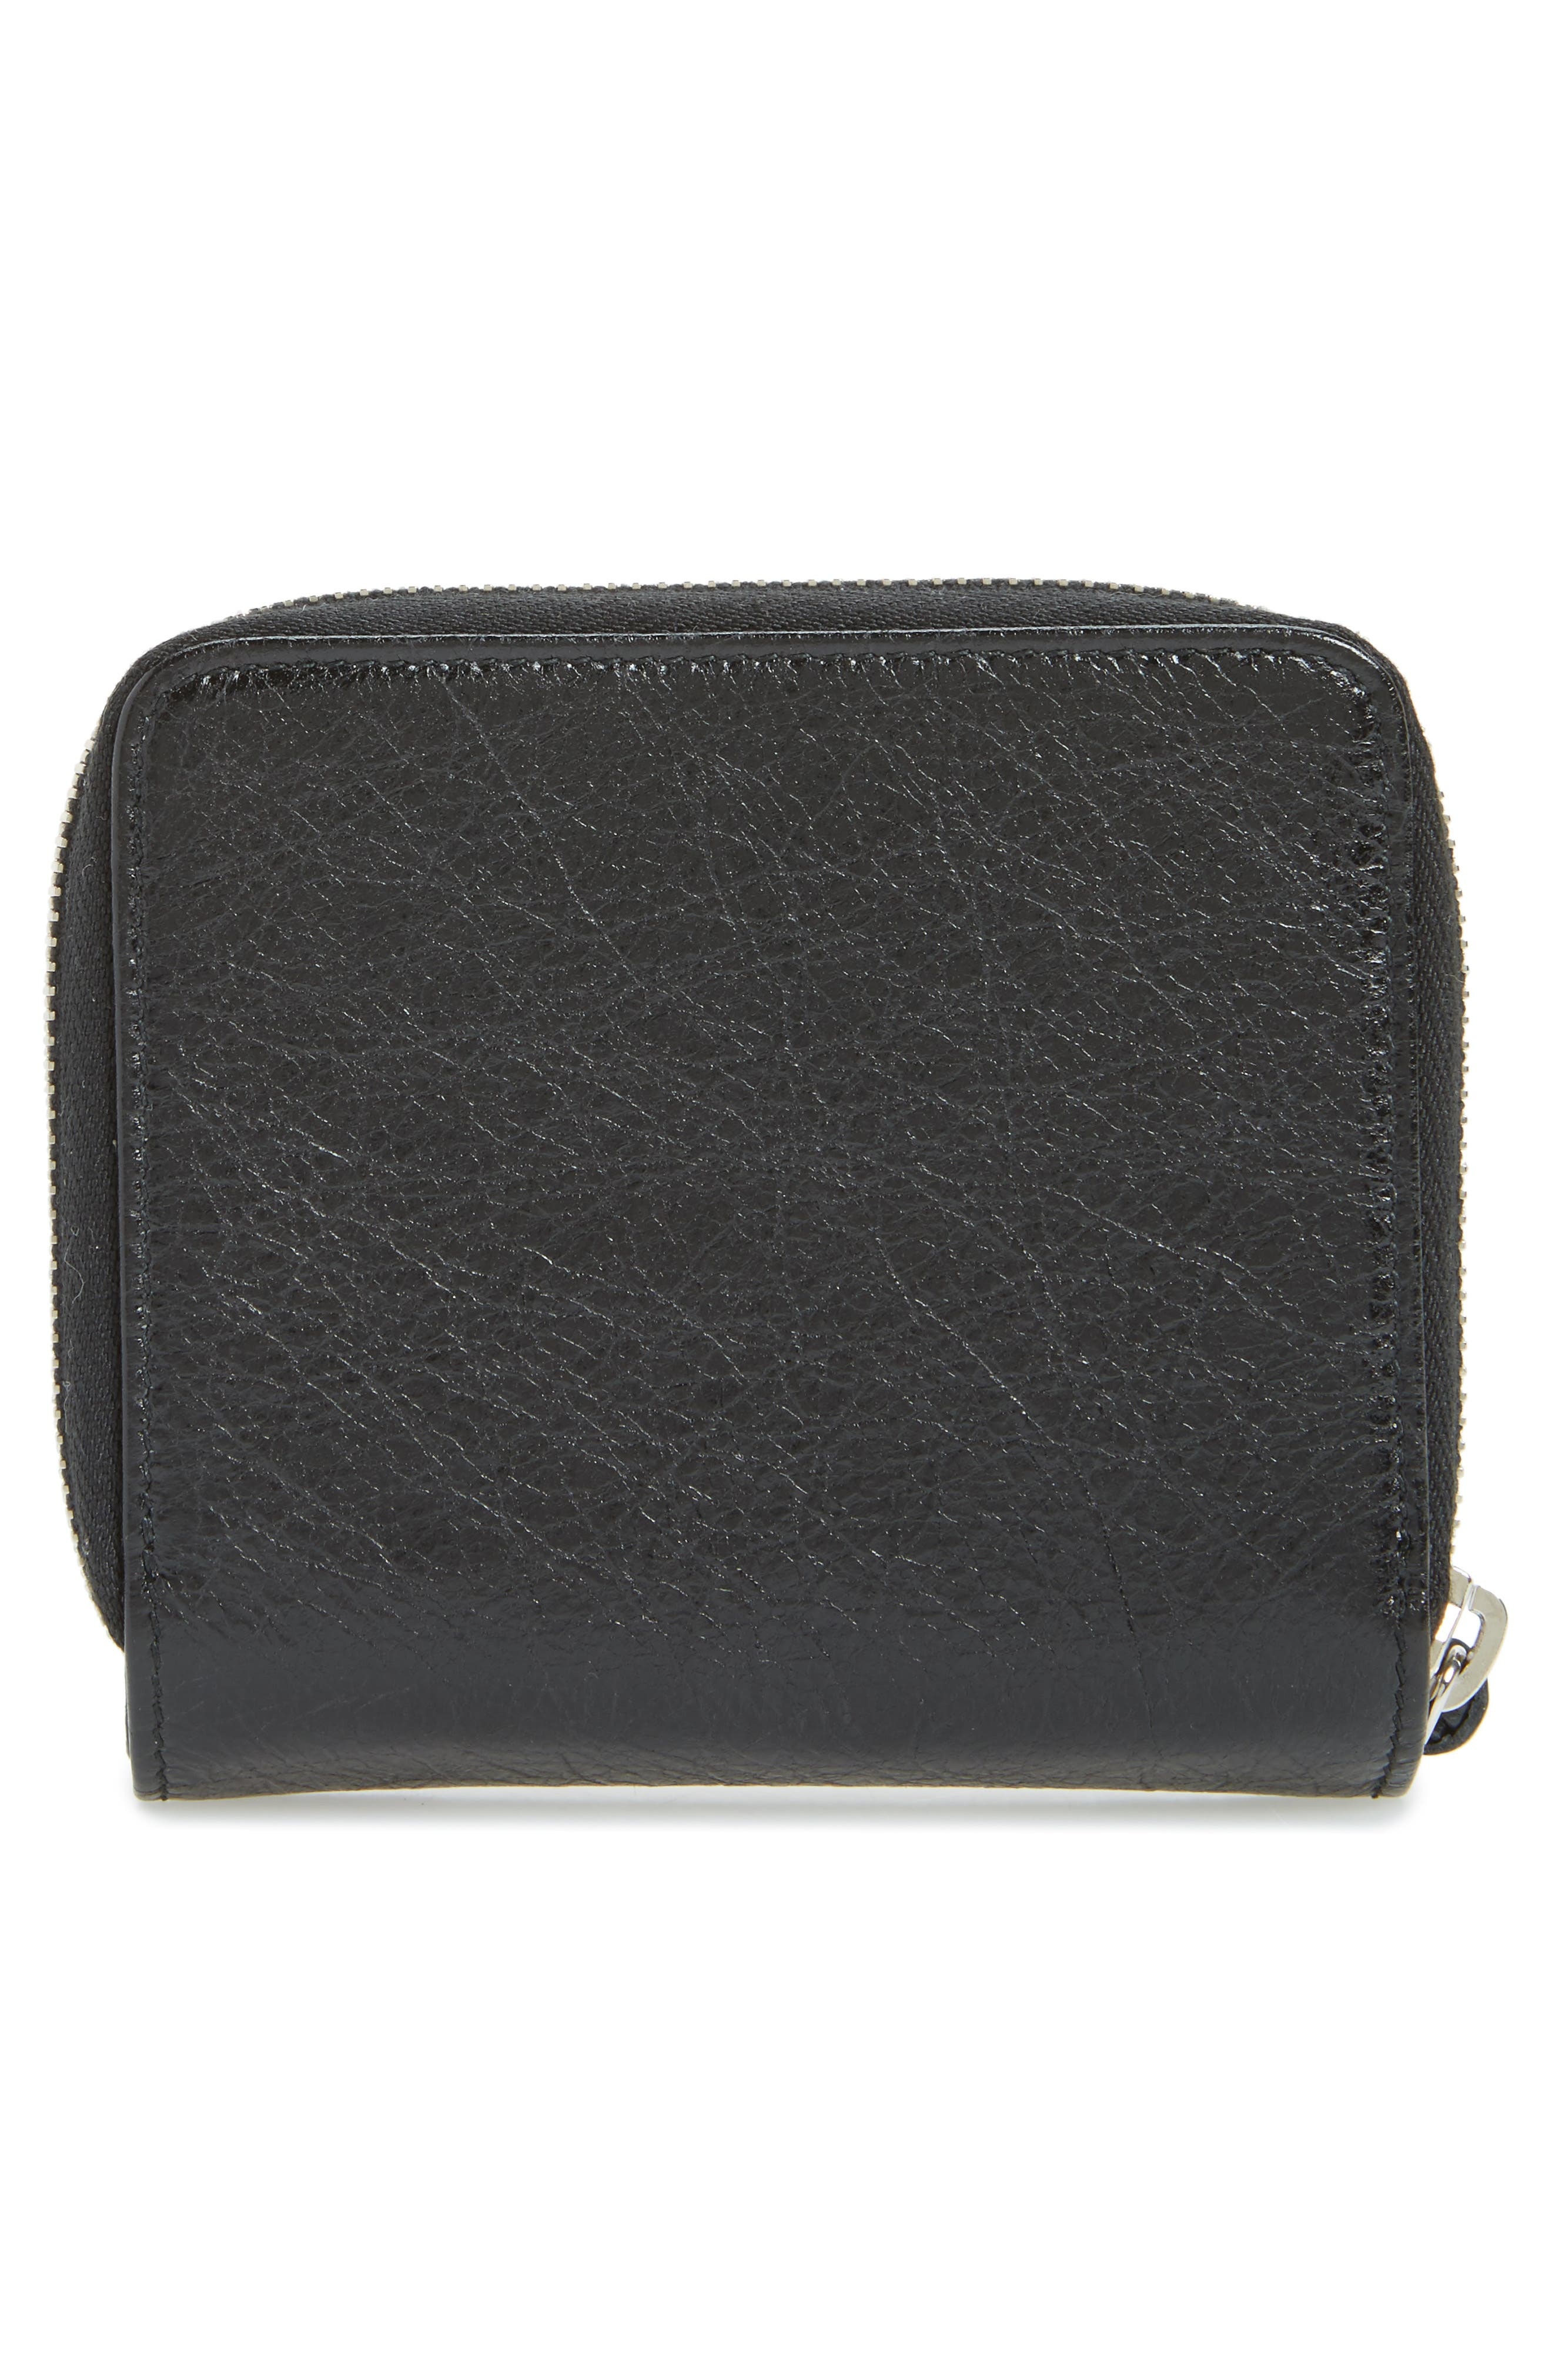 Classic Leather Billfold,                             Alternate thumbnail 4, color,                             1000 NOIR